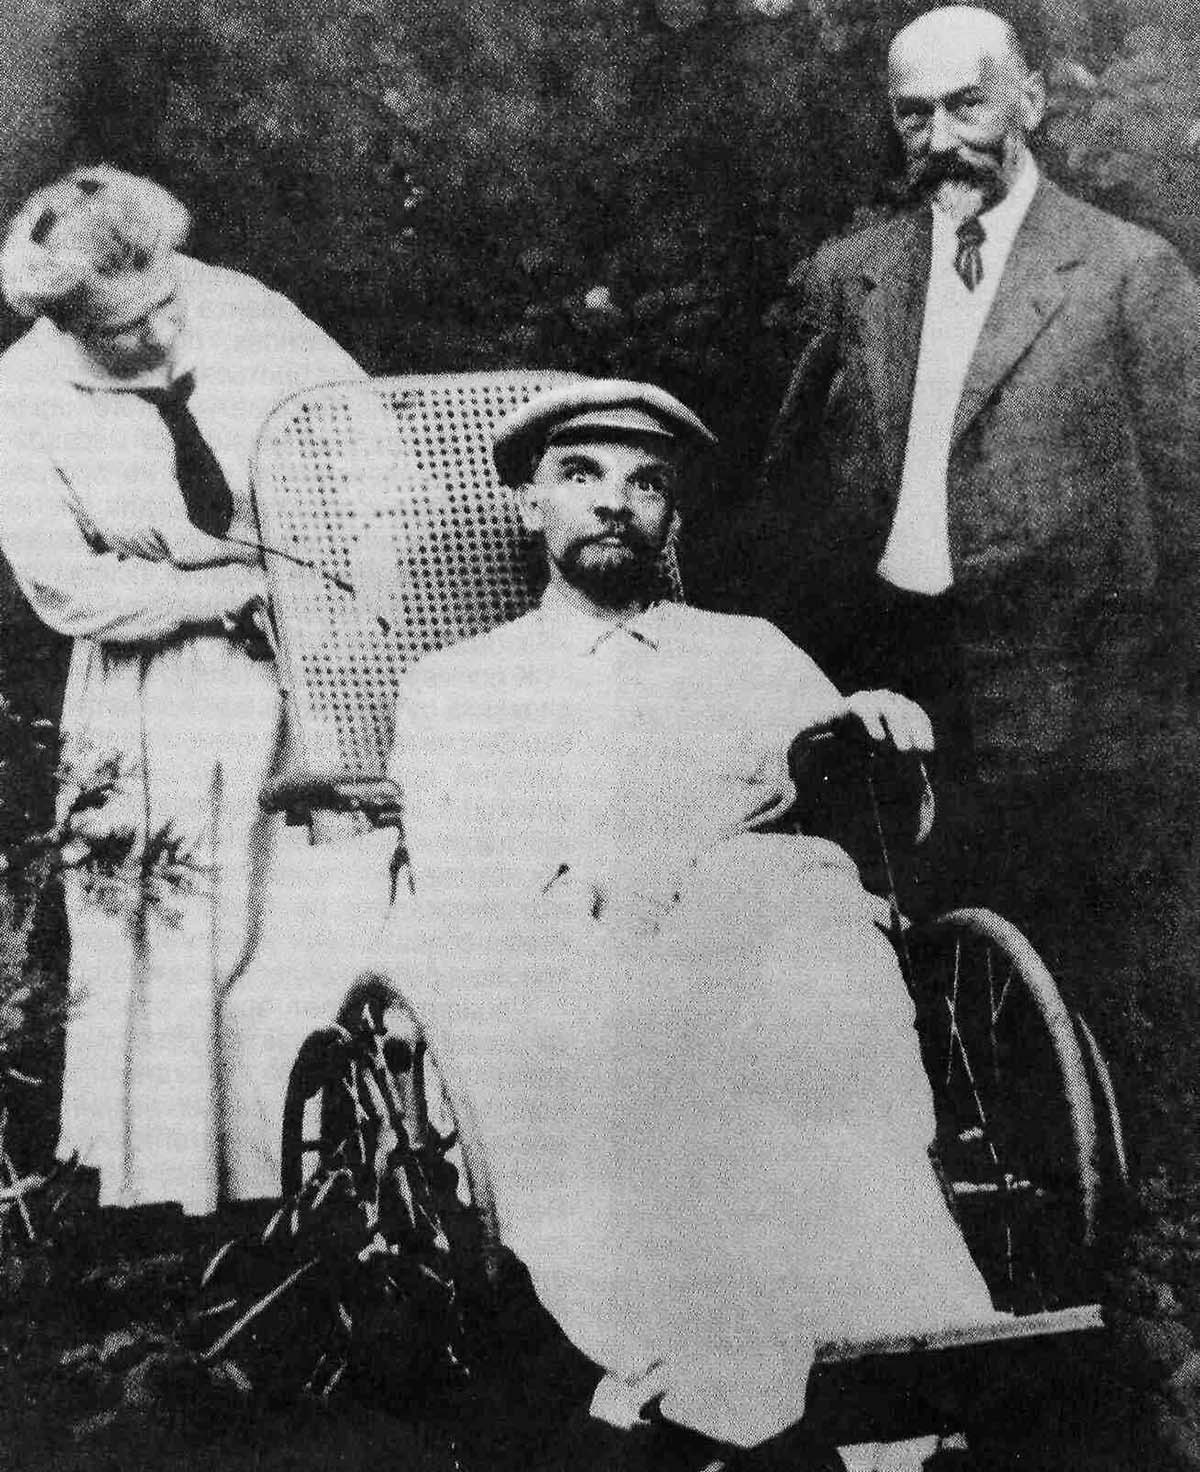 Vladimir Lenin's piercing stare while in a wheelchair, 1923.